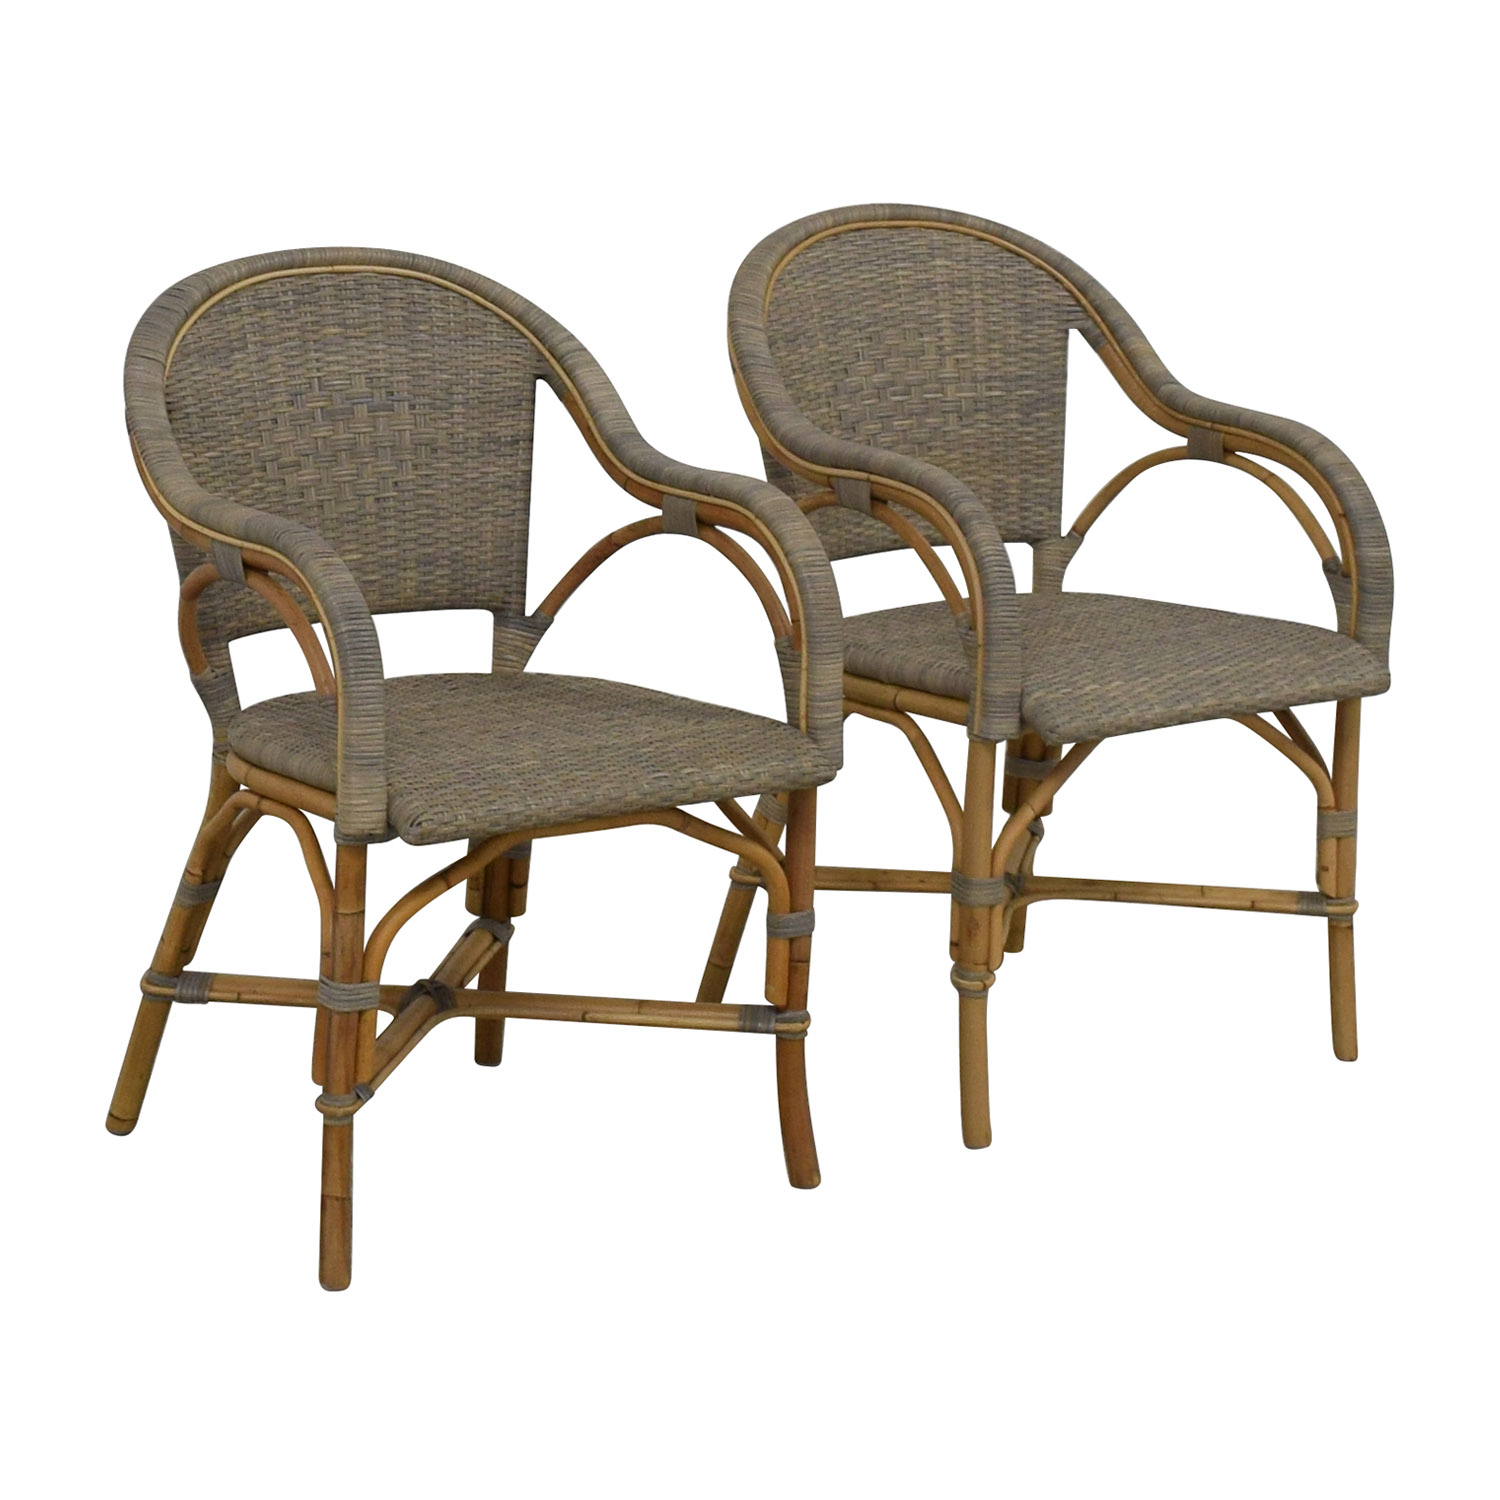 Serena & Lily Serena & Lily Sunwashed Riviera Armchairs Chairs